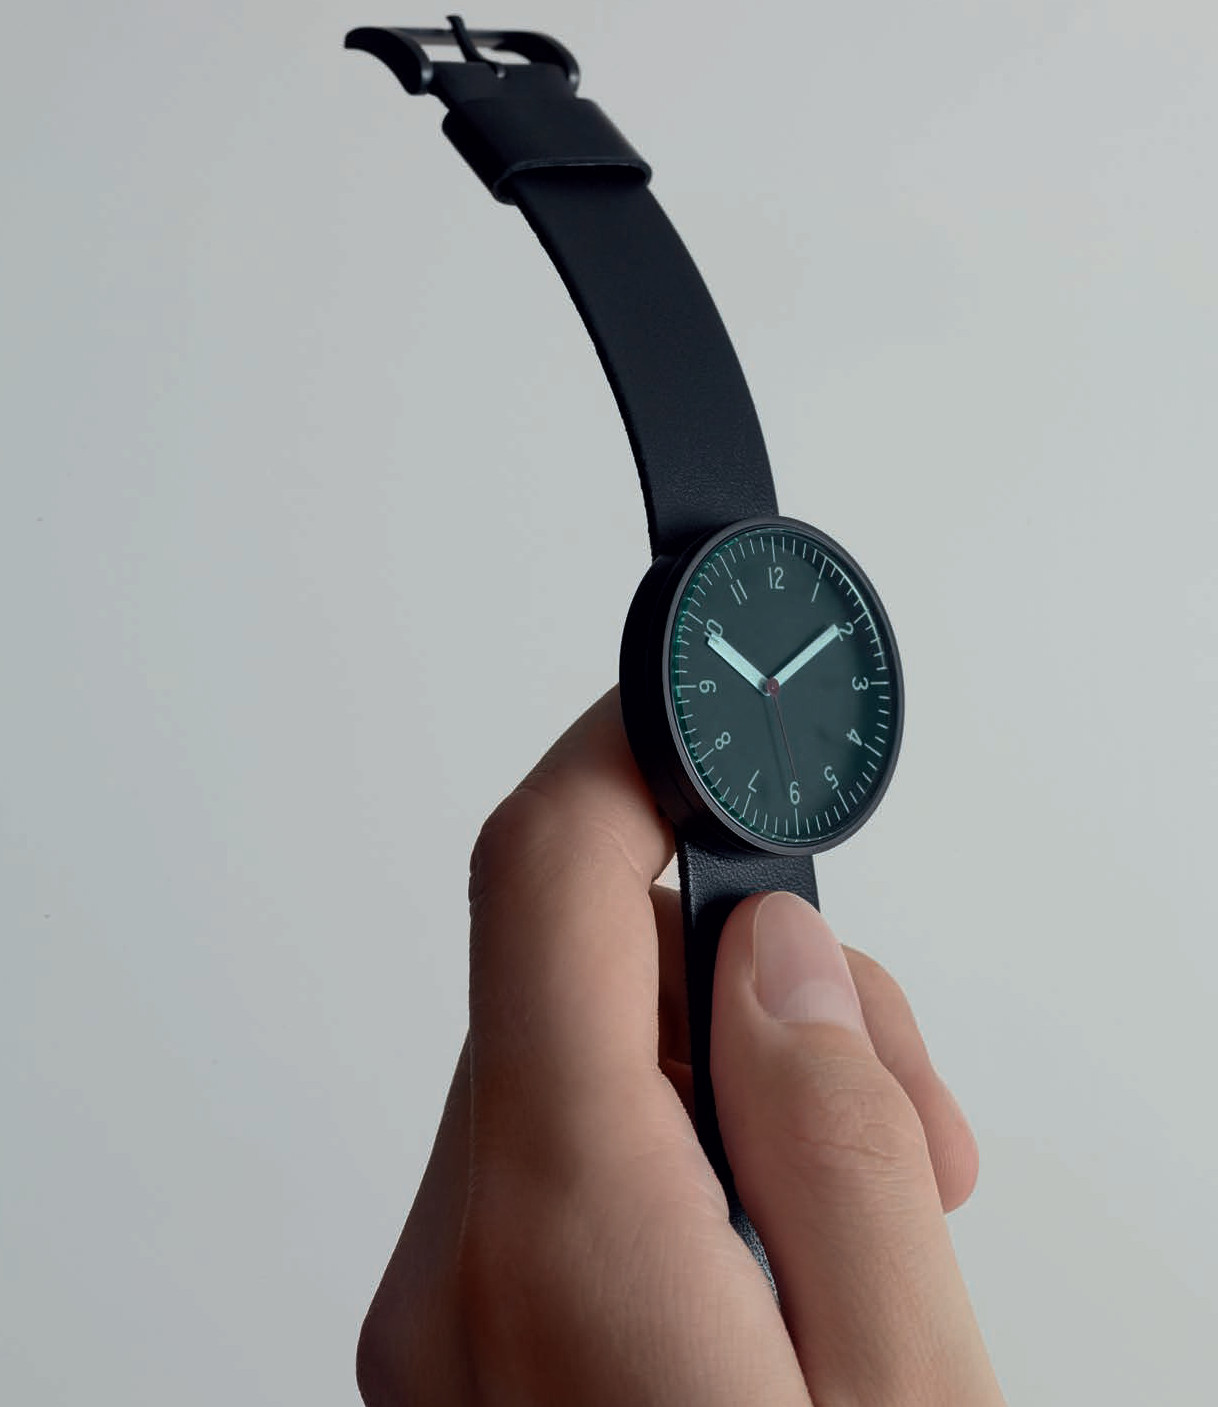 The Circumference Watch, 2007 by Industrial Facility for Muji